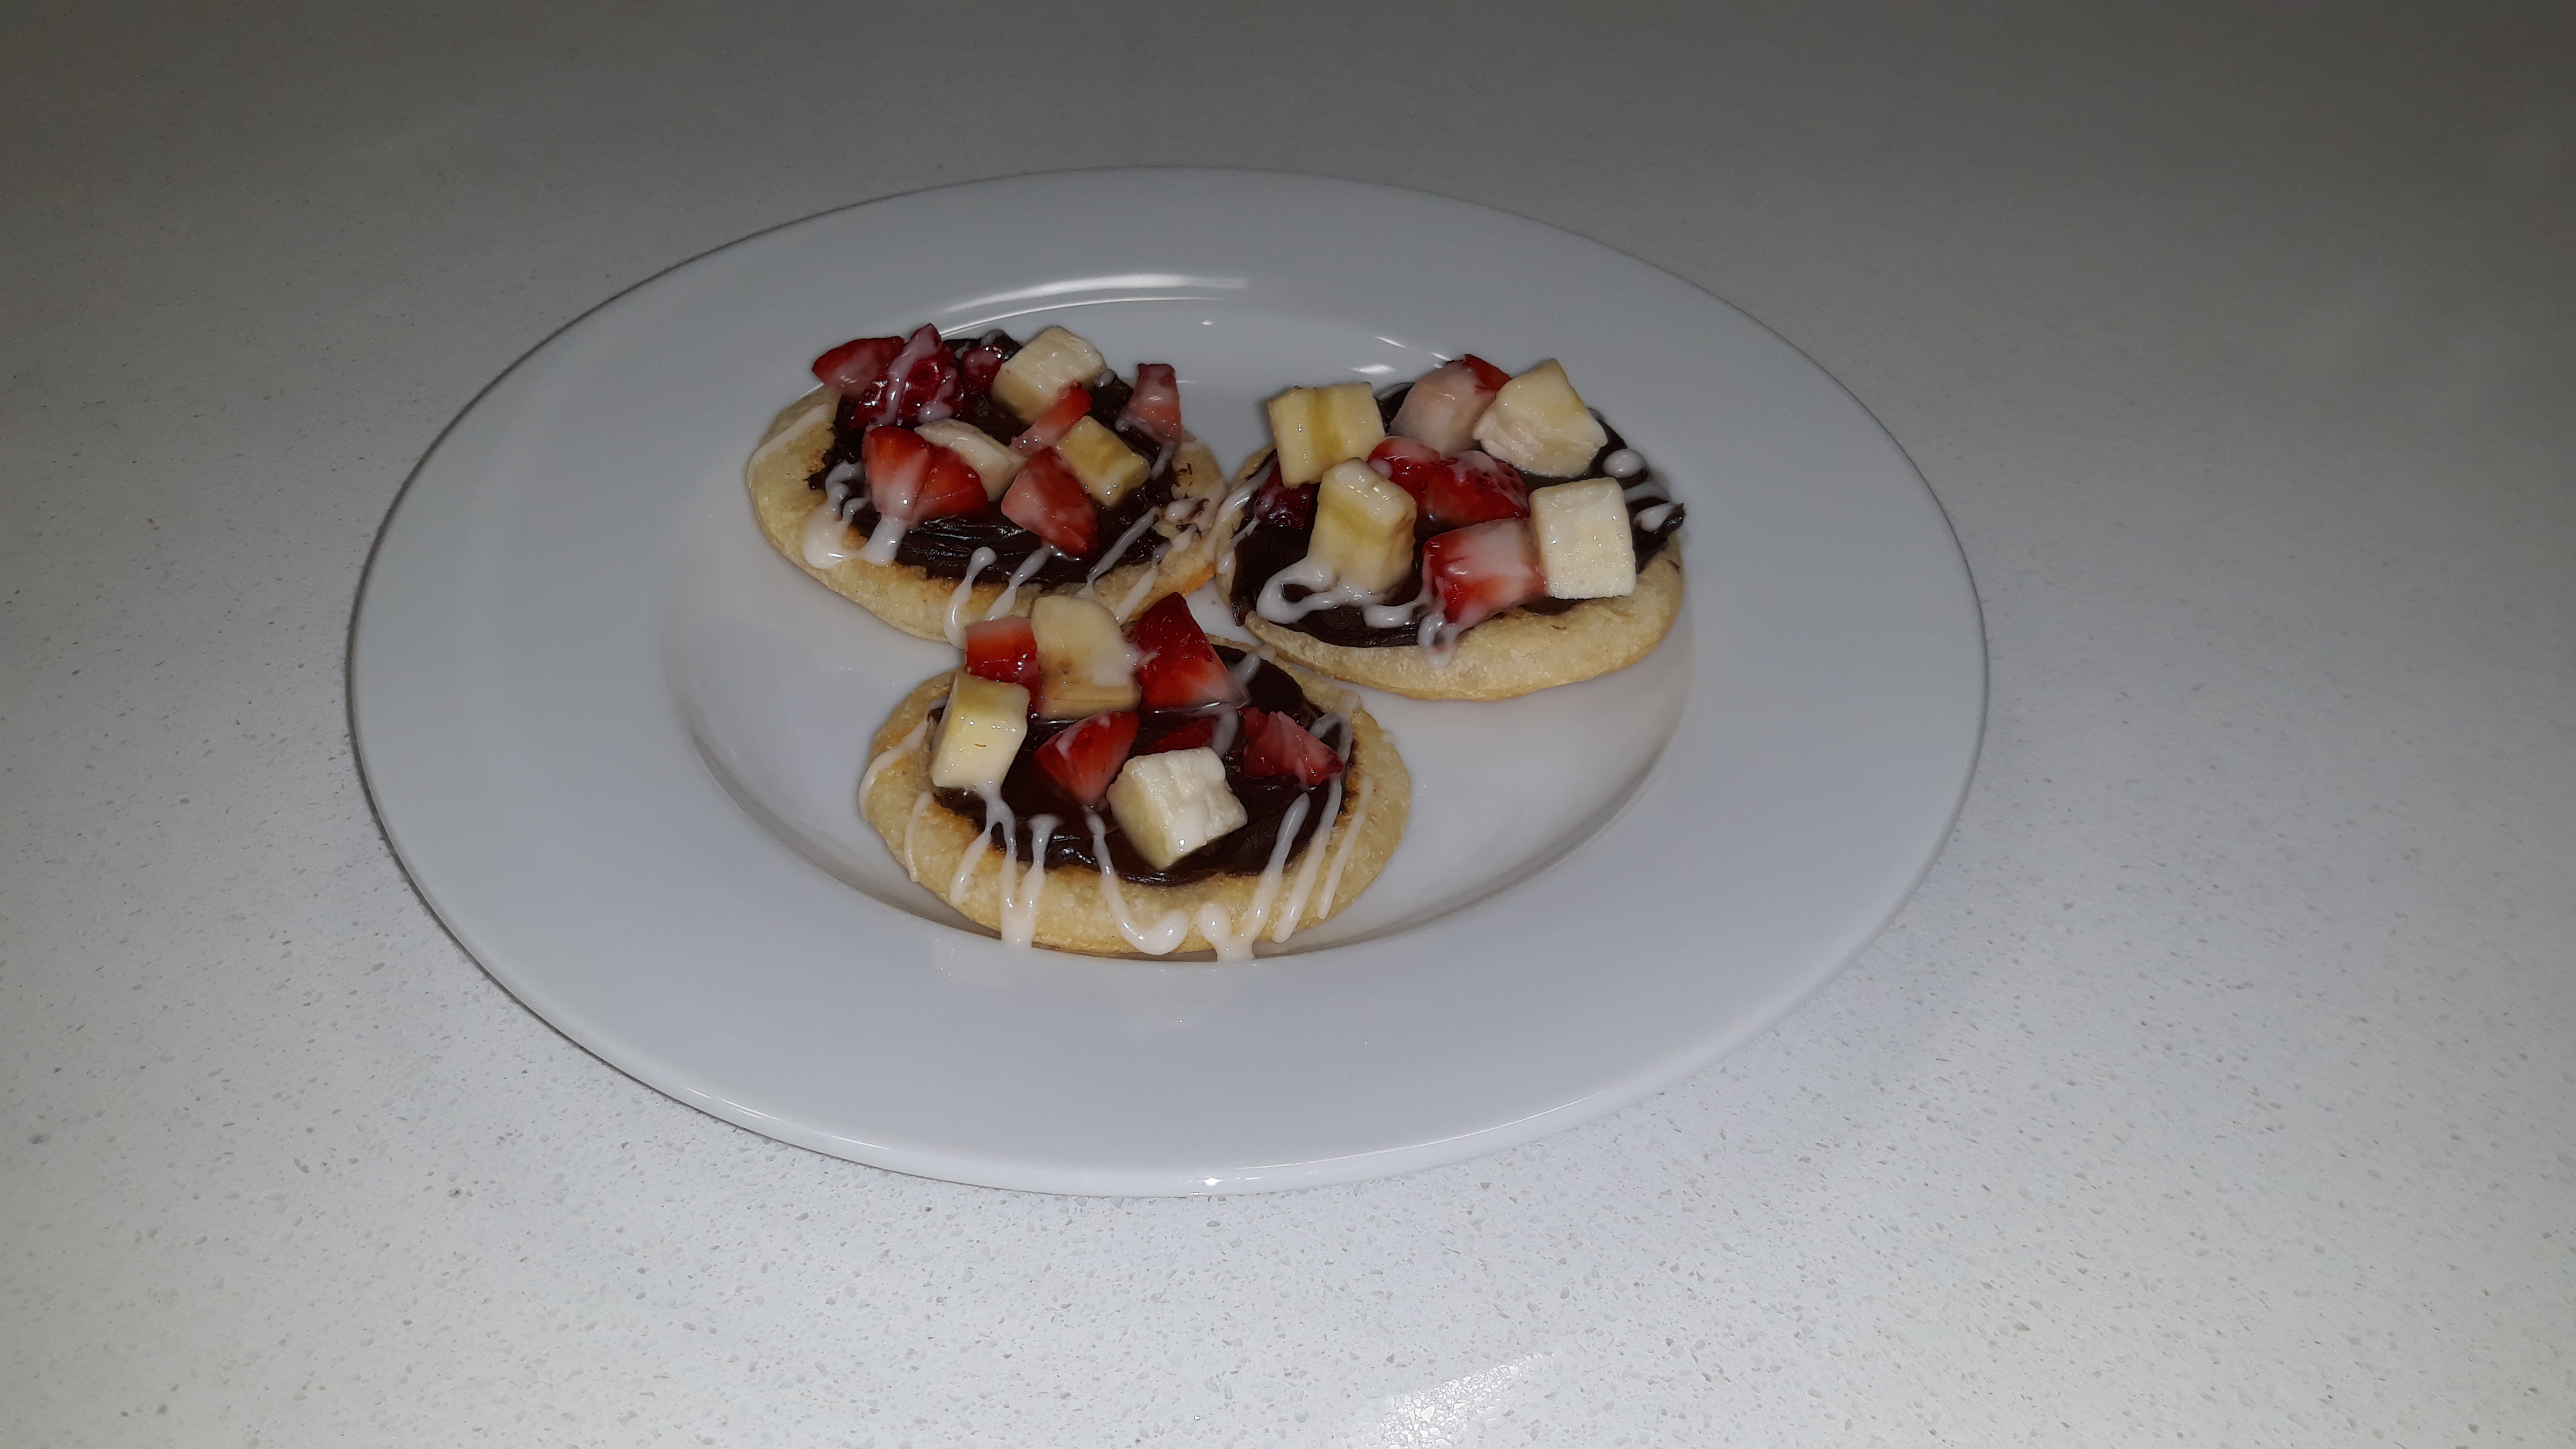 Three fruit and chocolate topped mini pizzas on a white plate.